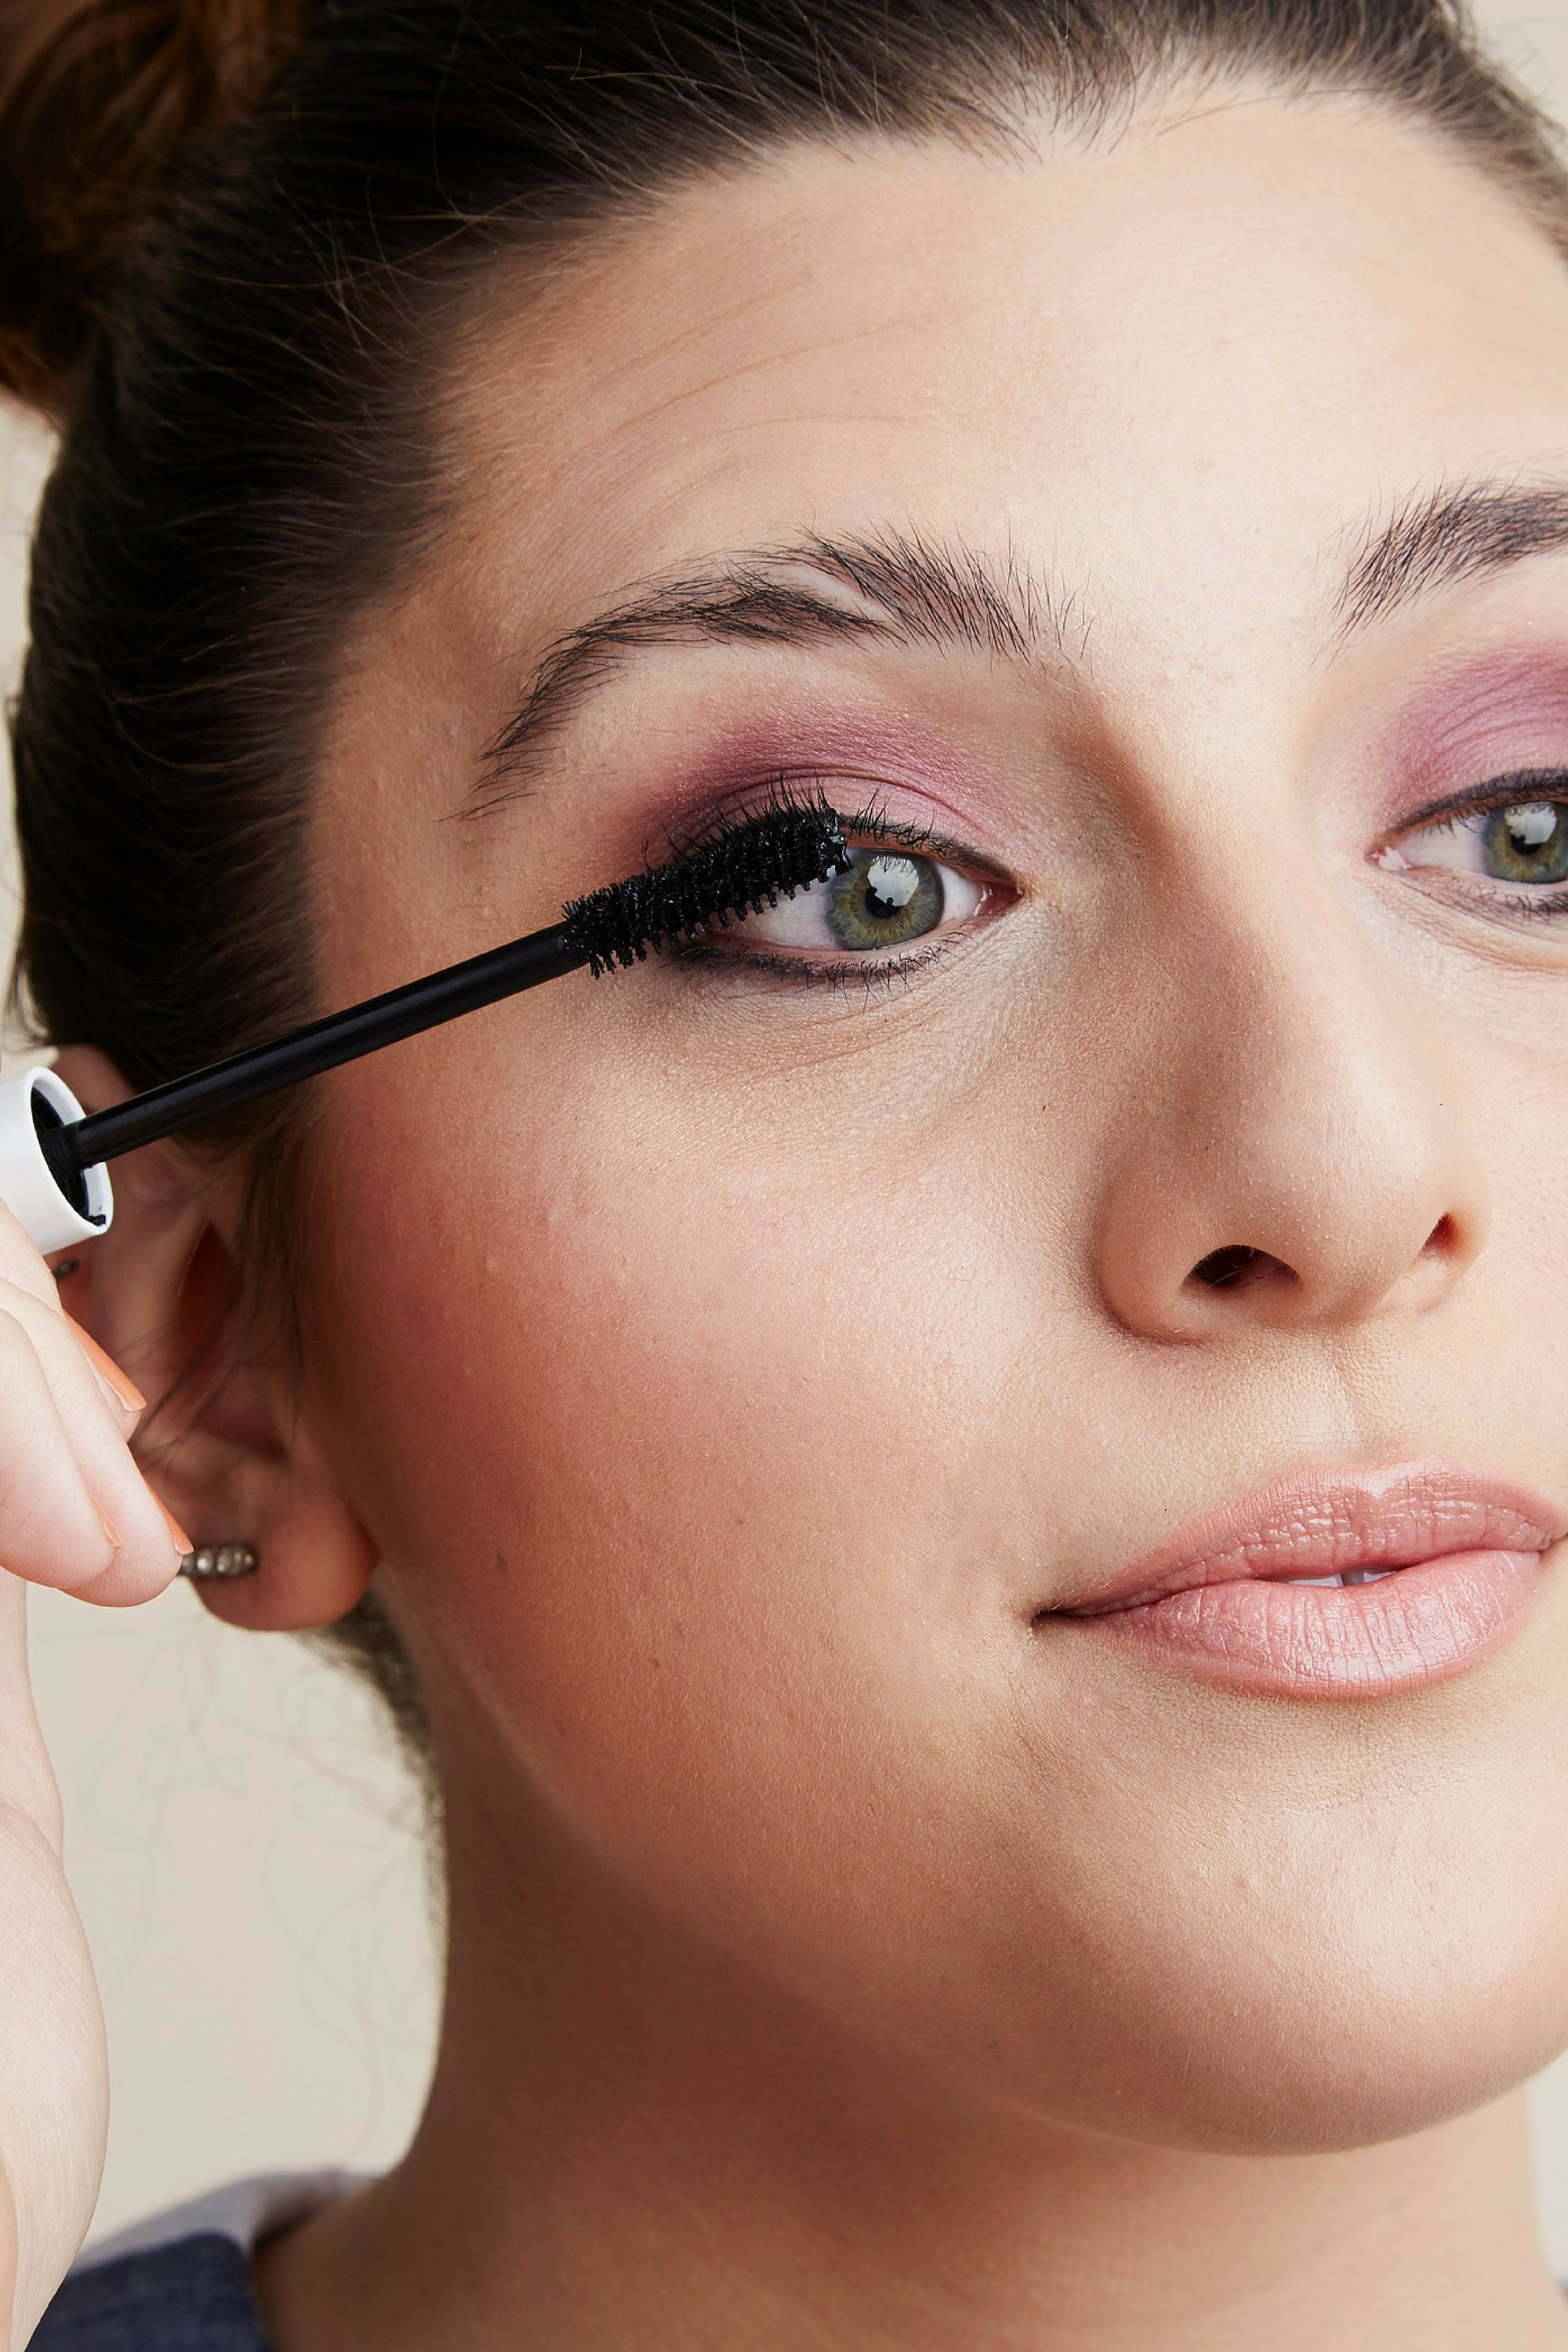 Makeup for people with glasses